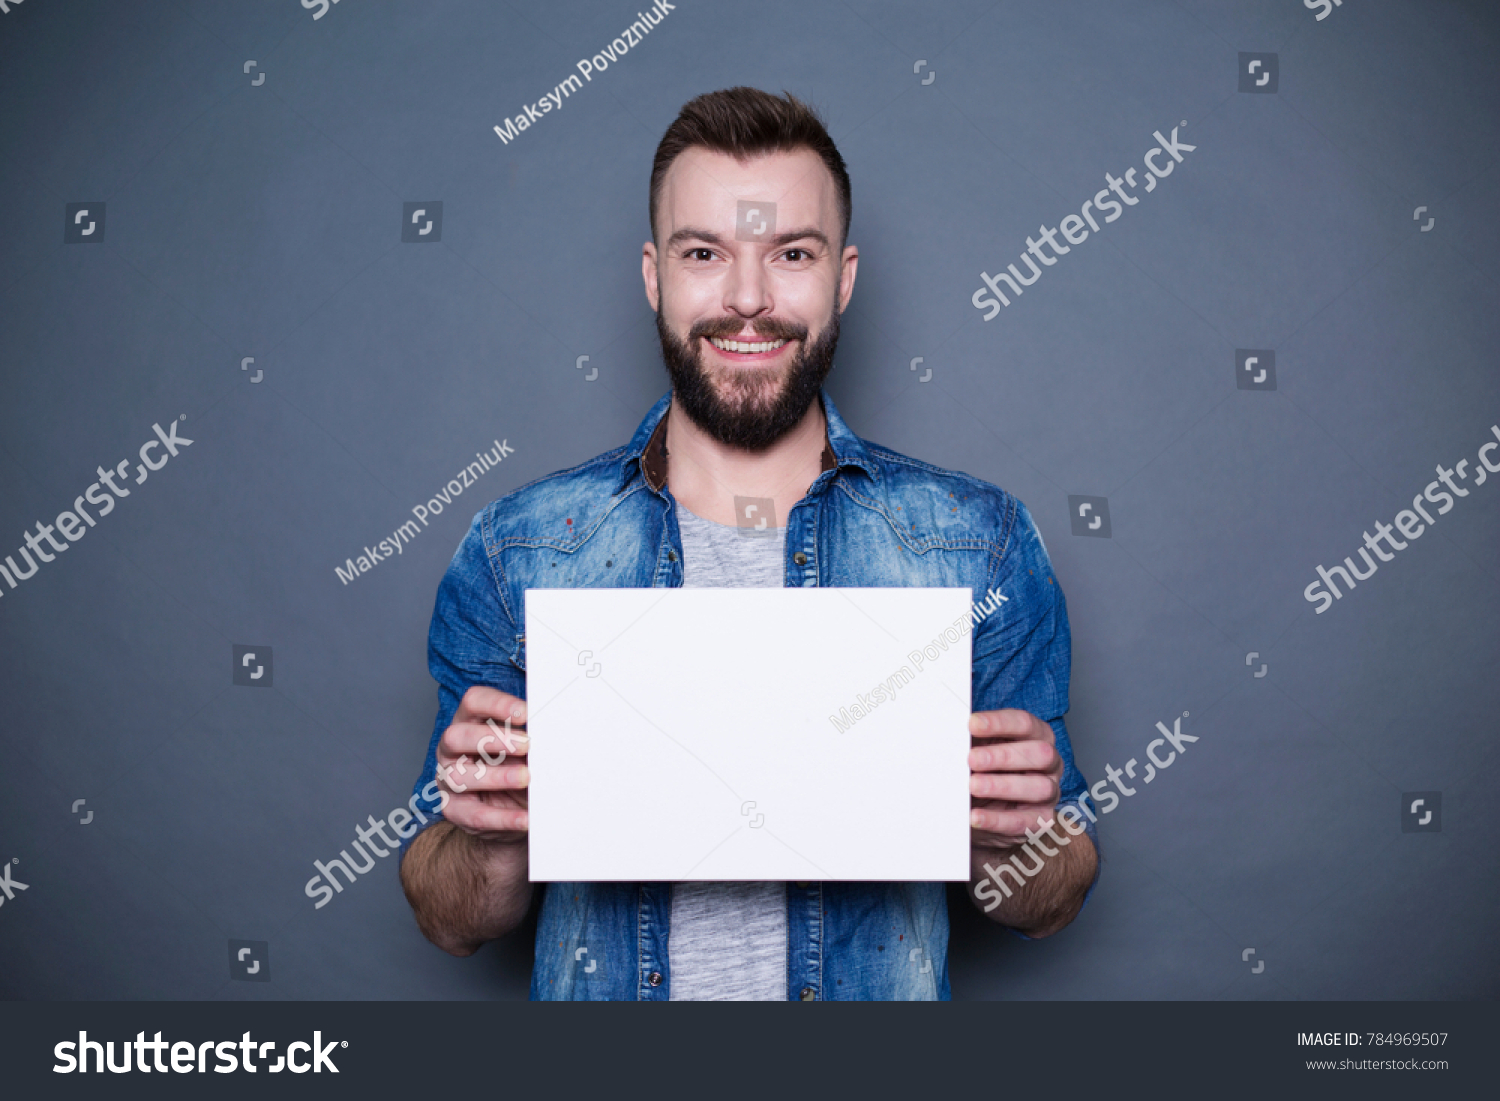 Everything is for you. Handsome young smiling man in a denim shirt shows a white sheet of paper in the camera on a gray background. Area for advertising. #784969507